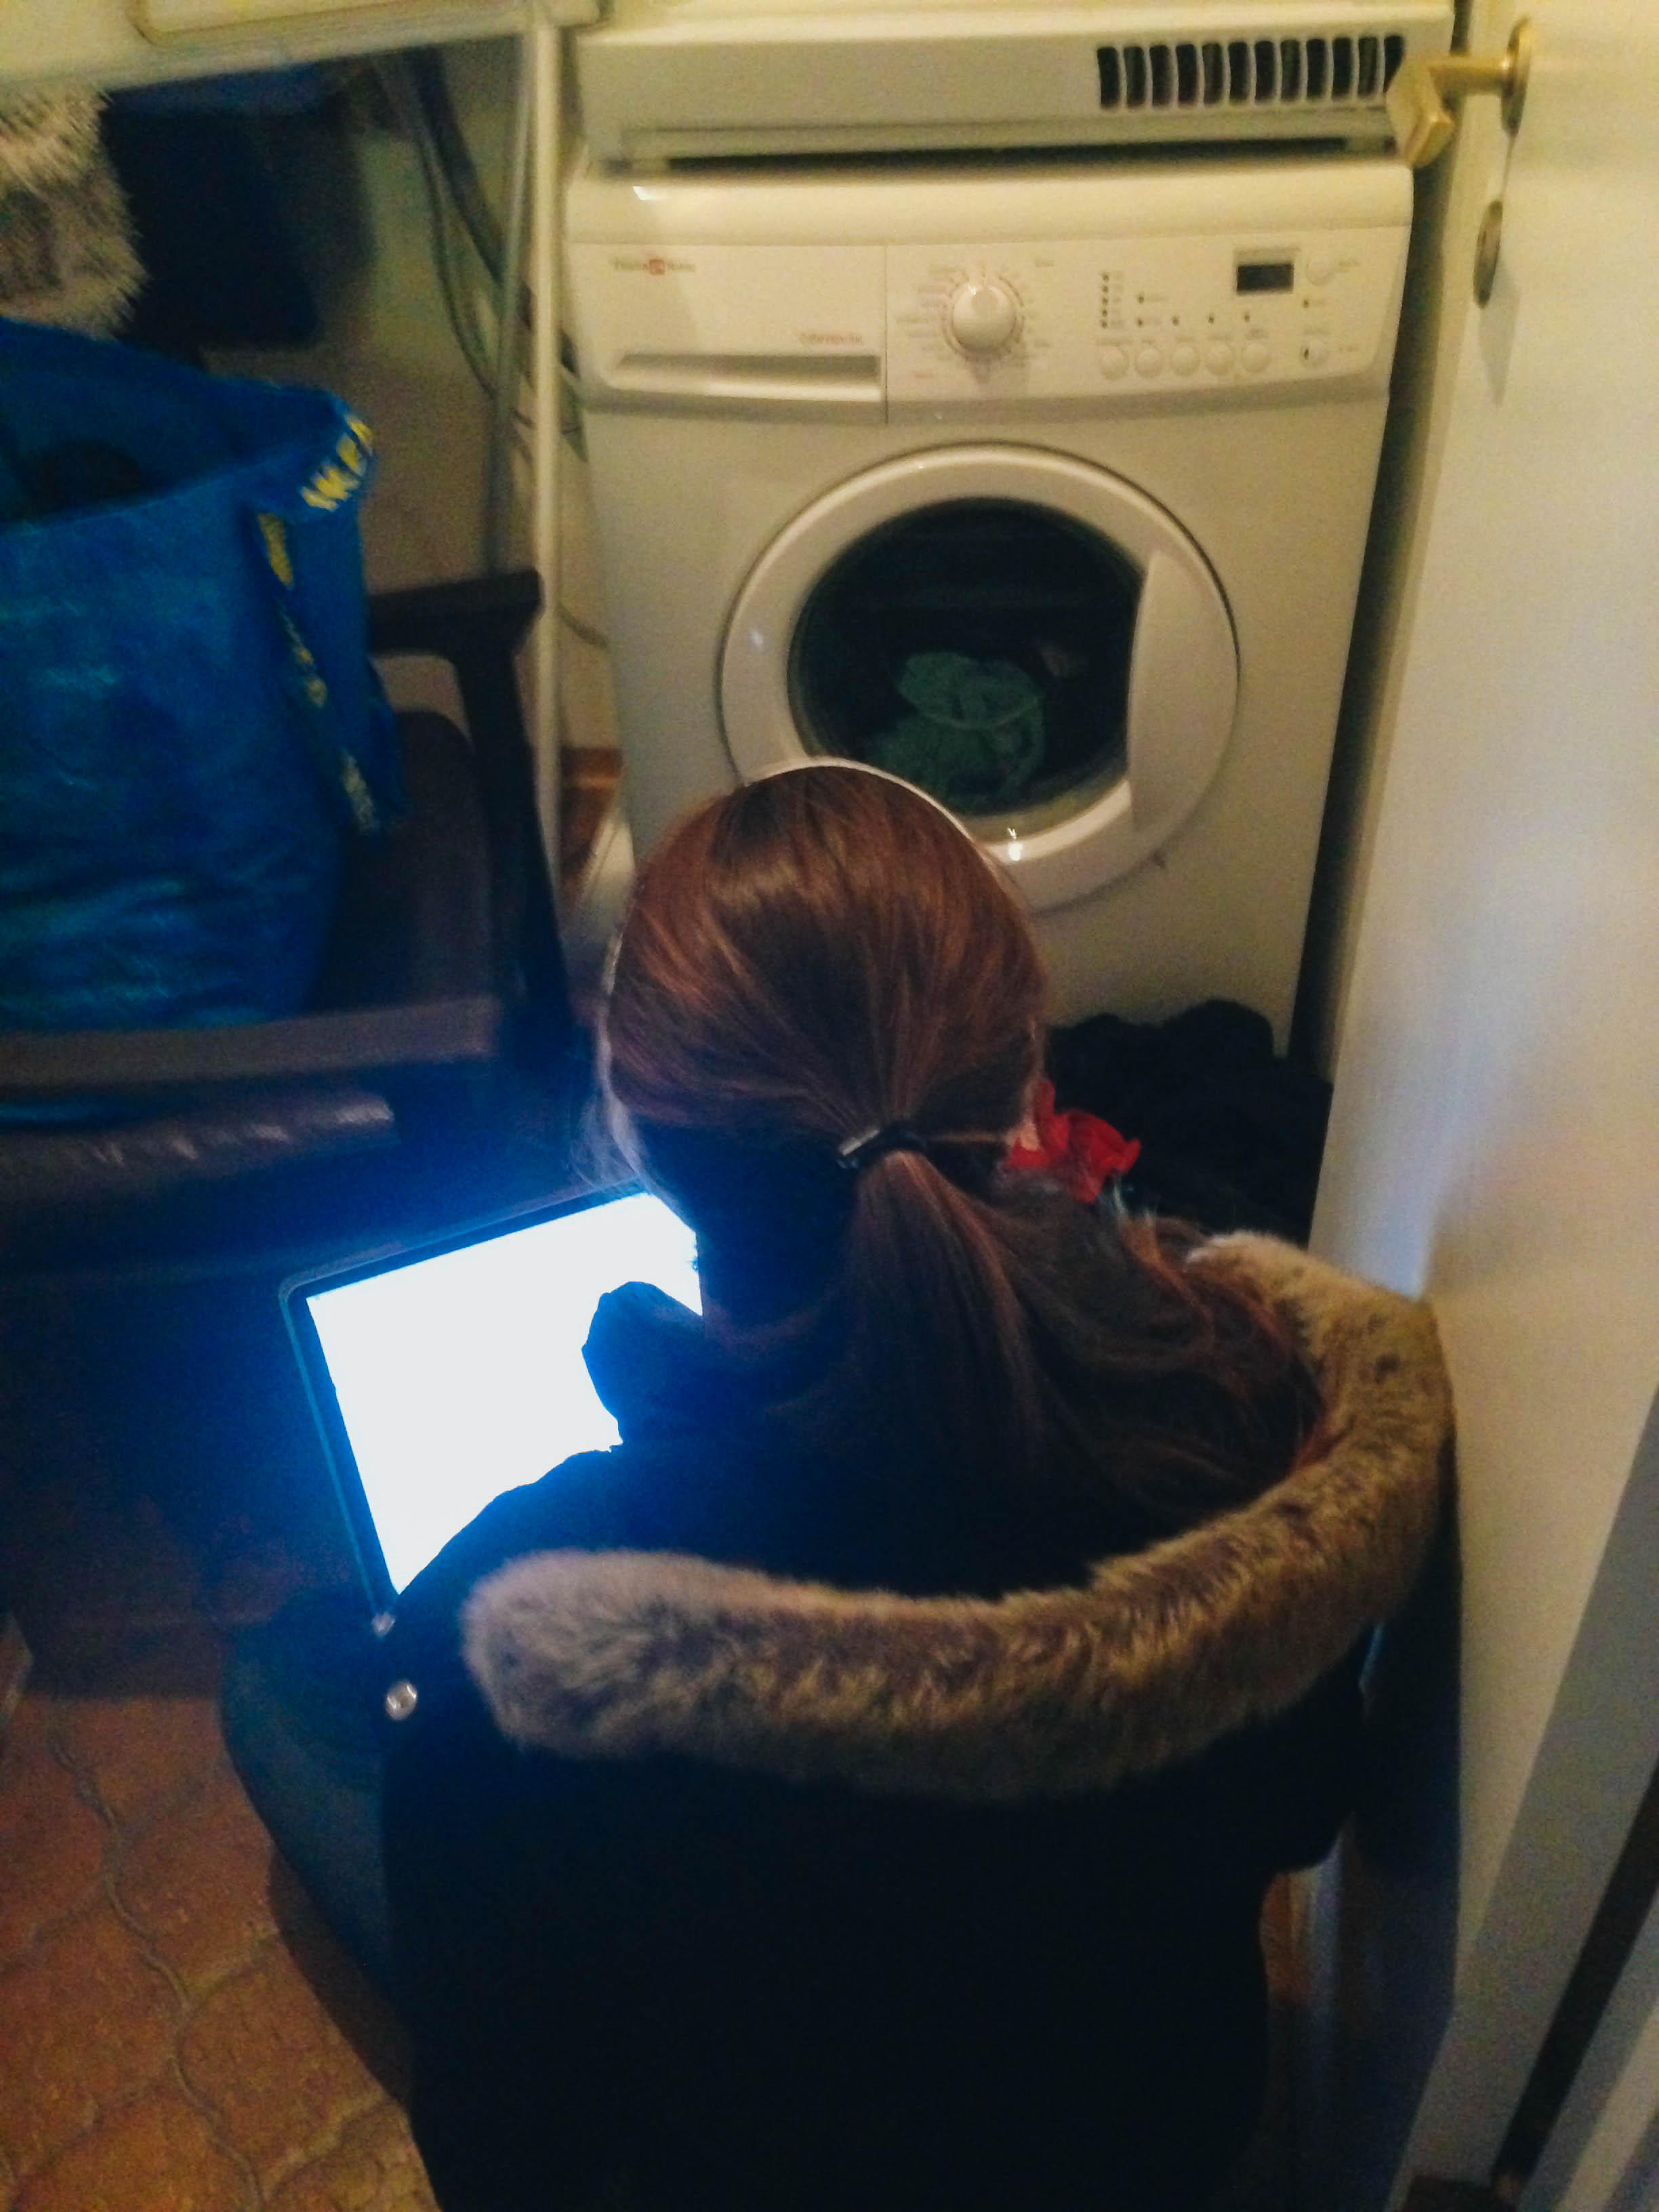 brie trying to translate the swedish controls on the washing machine